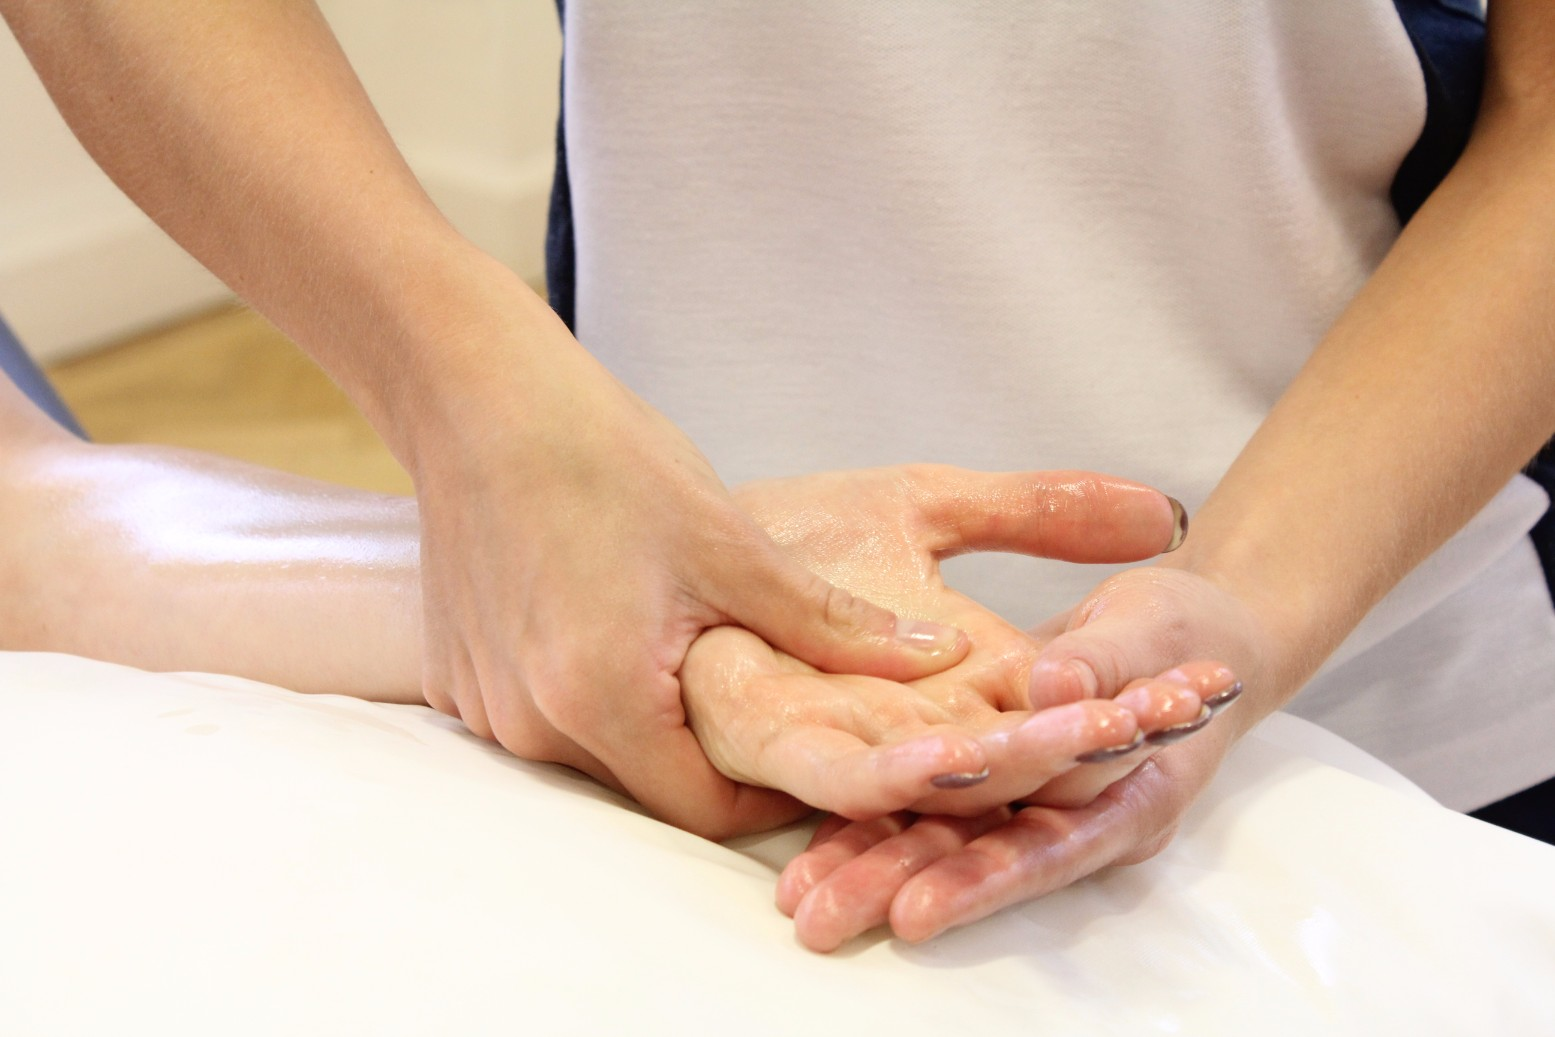 Therapist rubbing patient's palm.